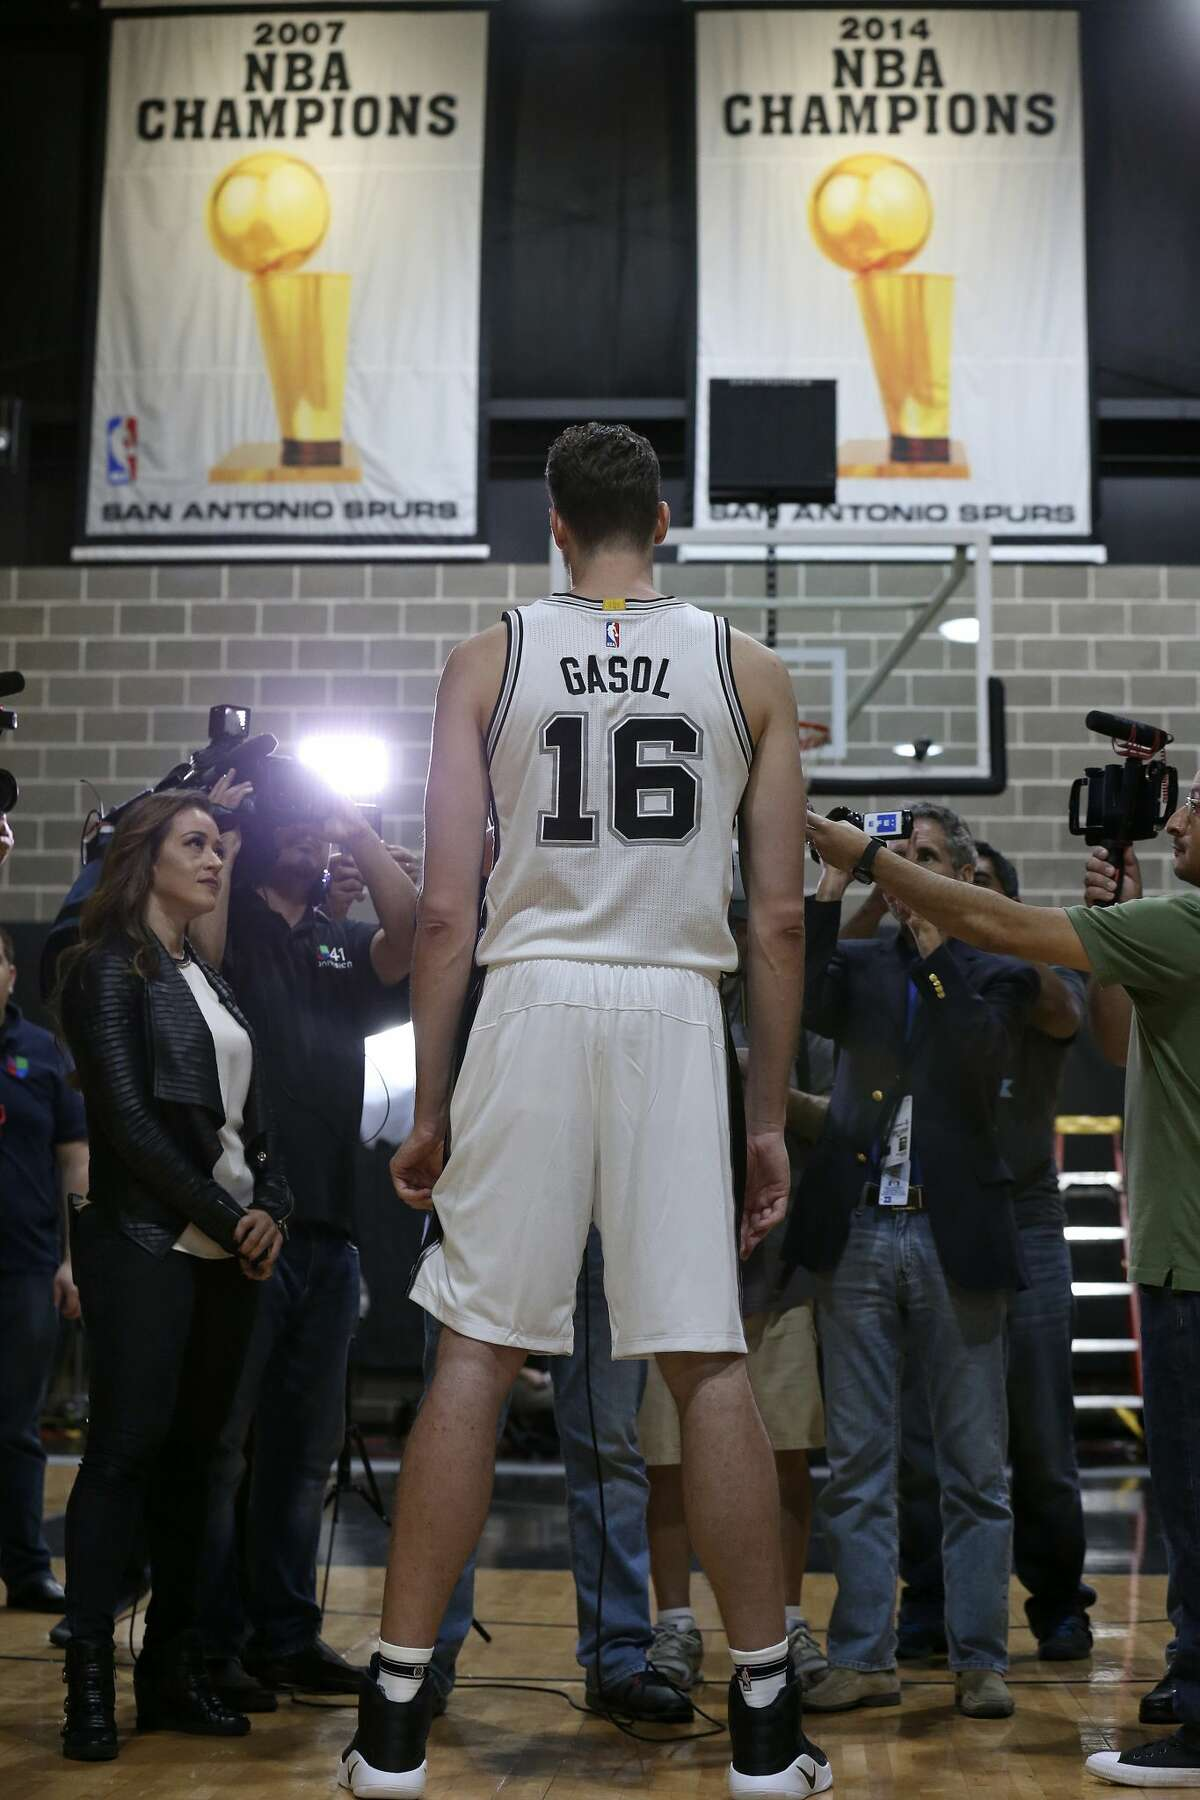 San Antonio Spurs' Pau Gasol answers questions from the media during Spurs Media Day held Monday Sept. 26, 2016 at the Spurs practice facility.